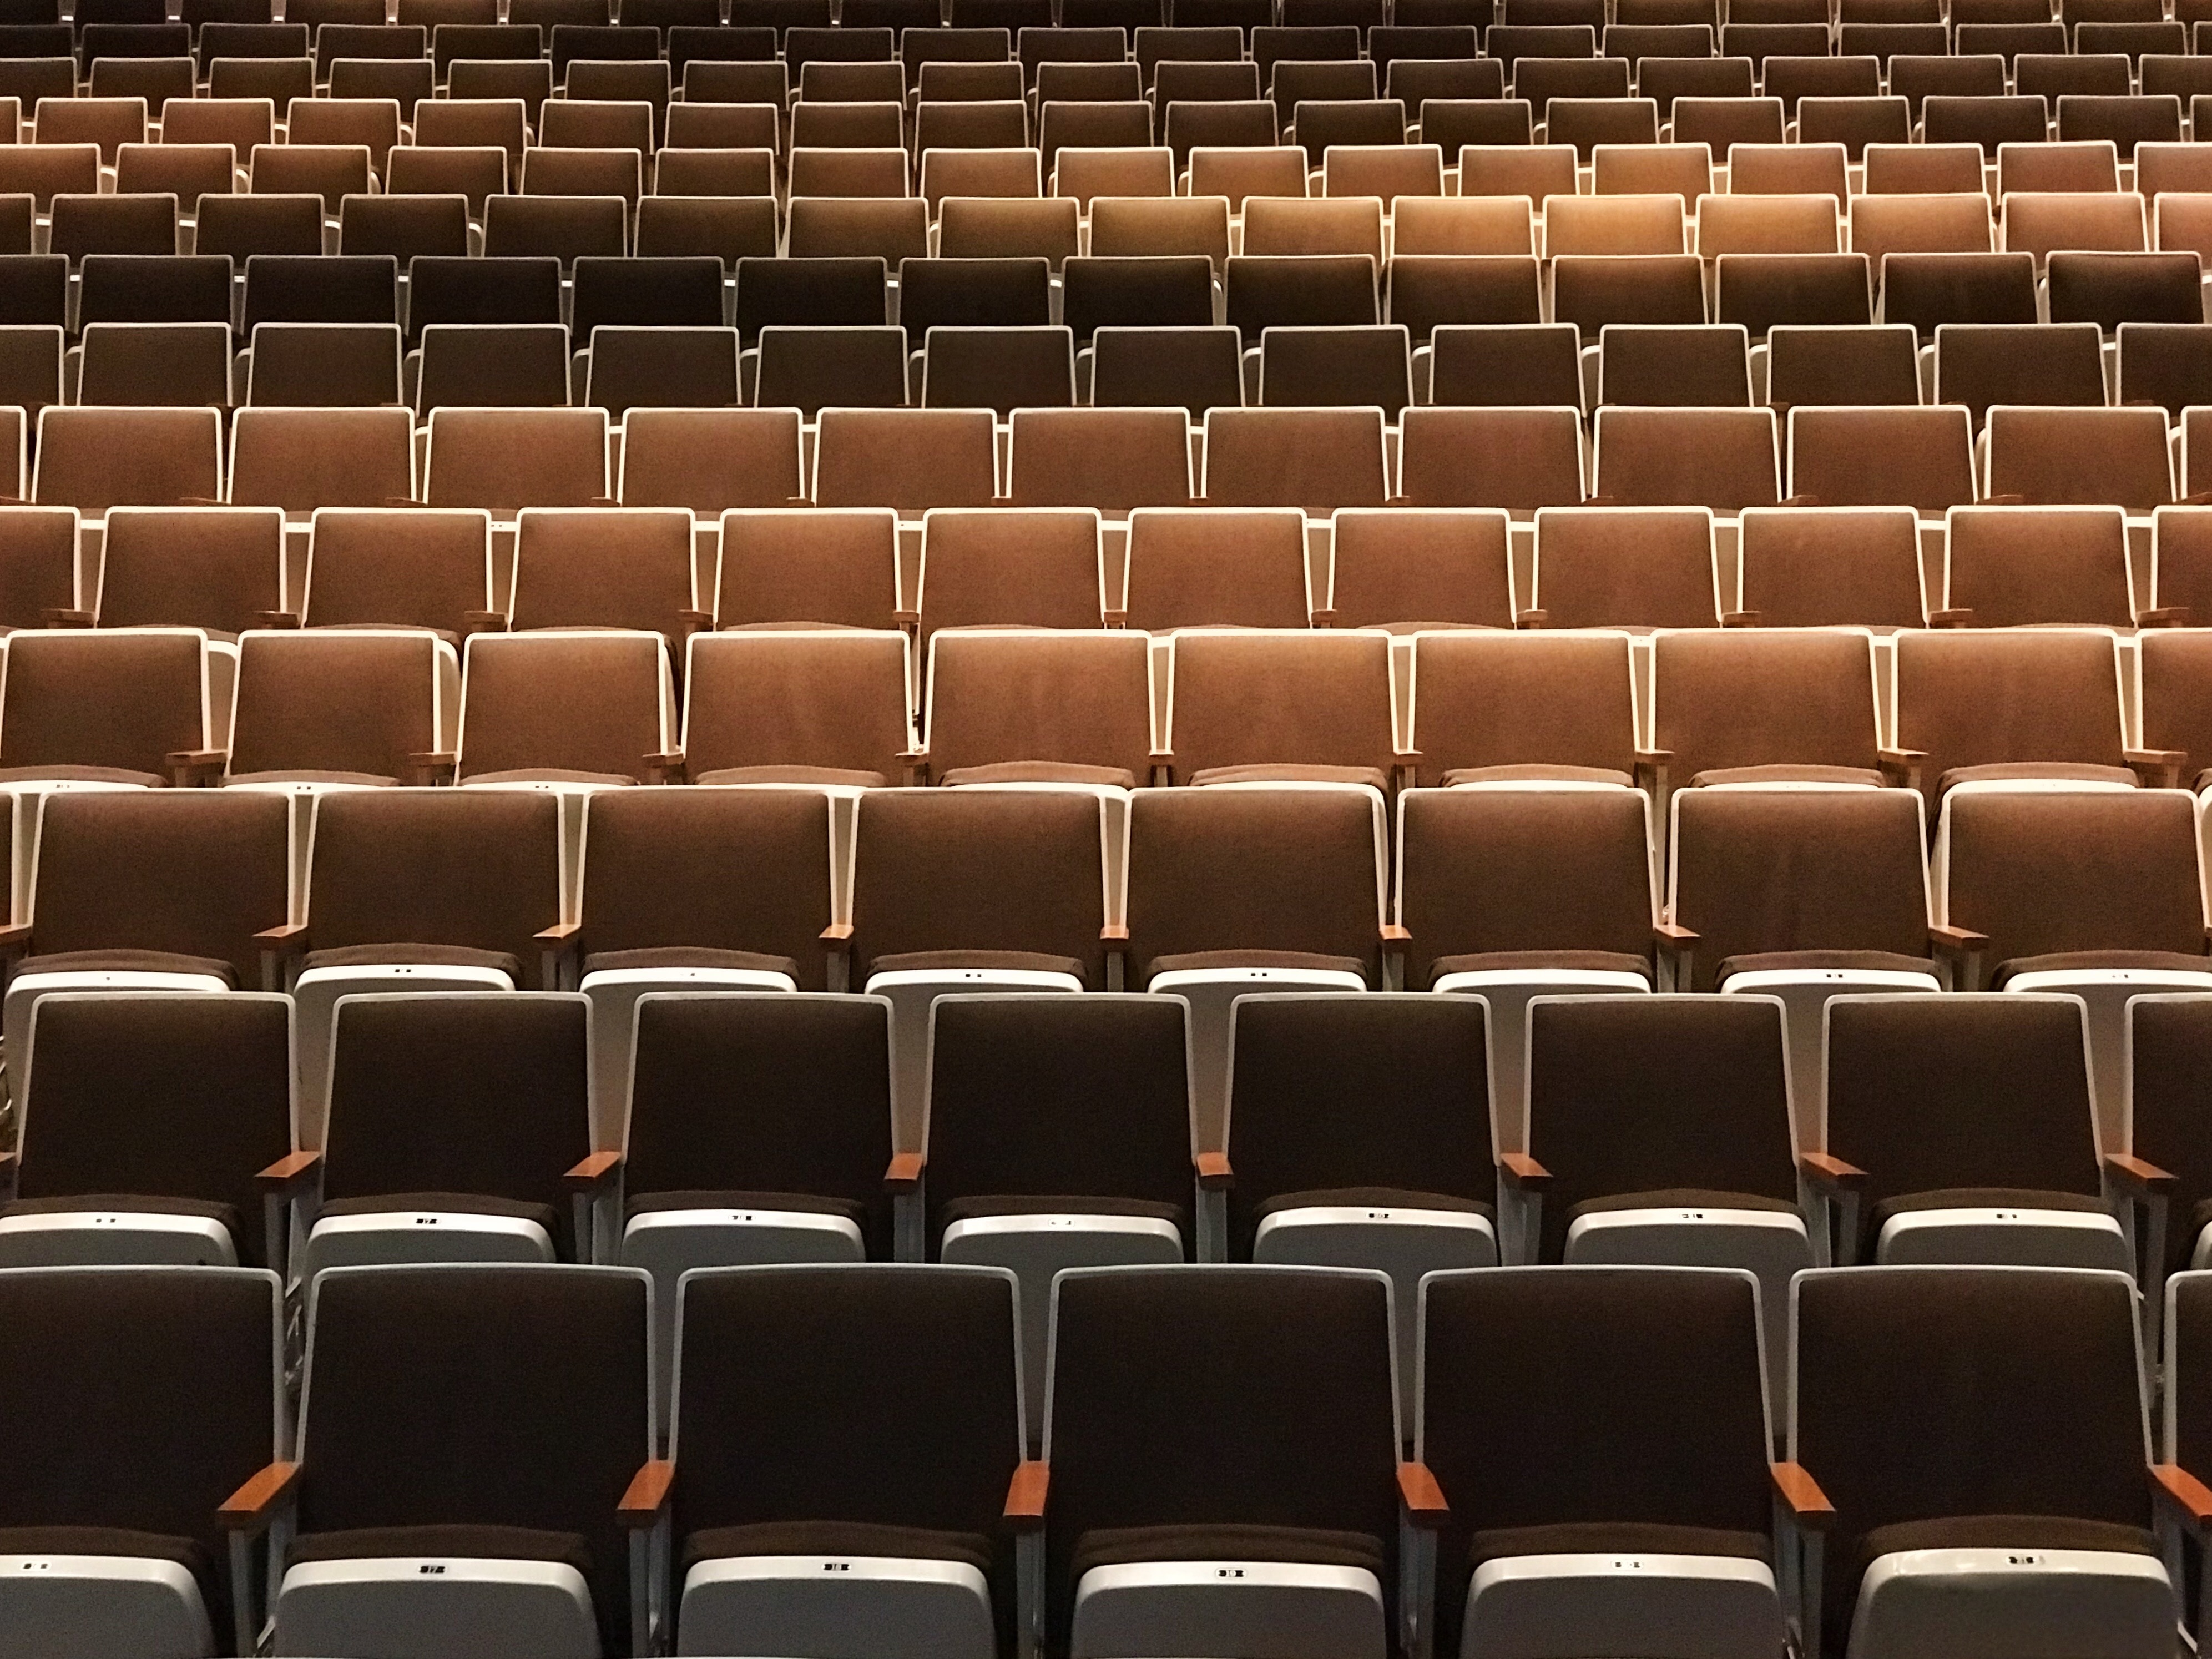 Overcoming A Bad Public Speaking Experience